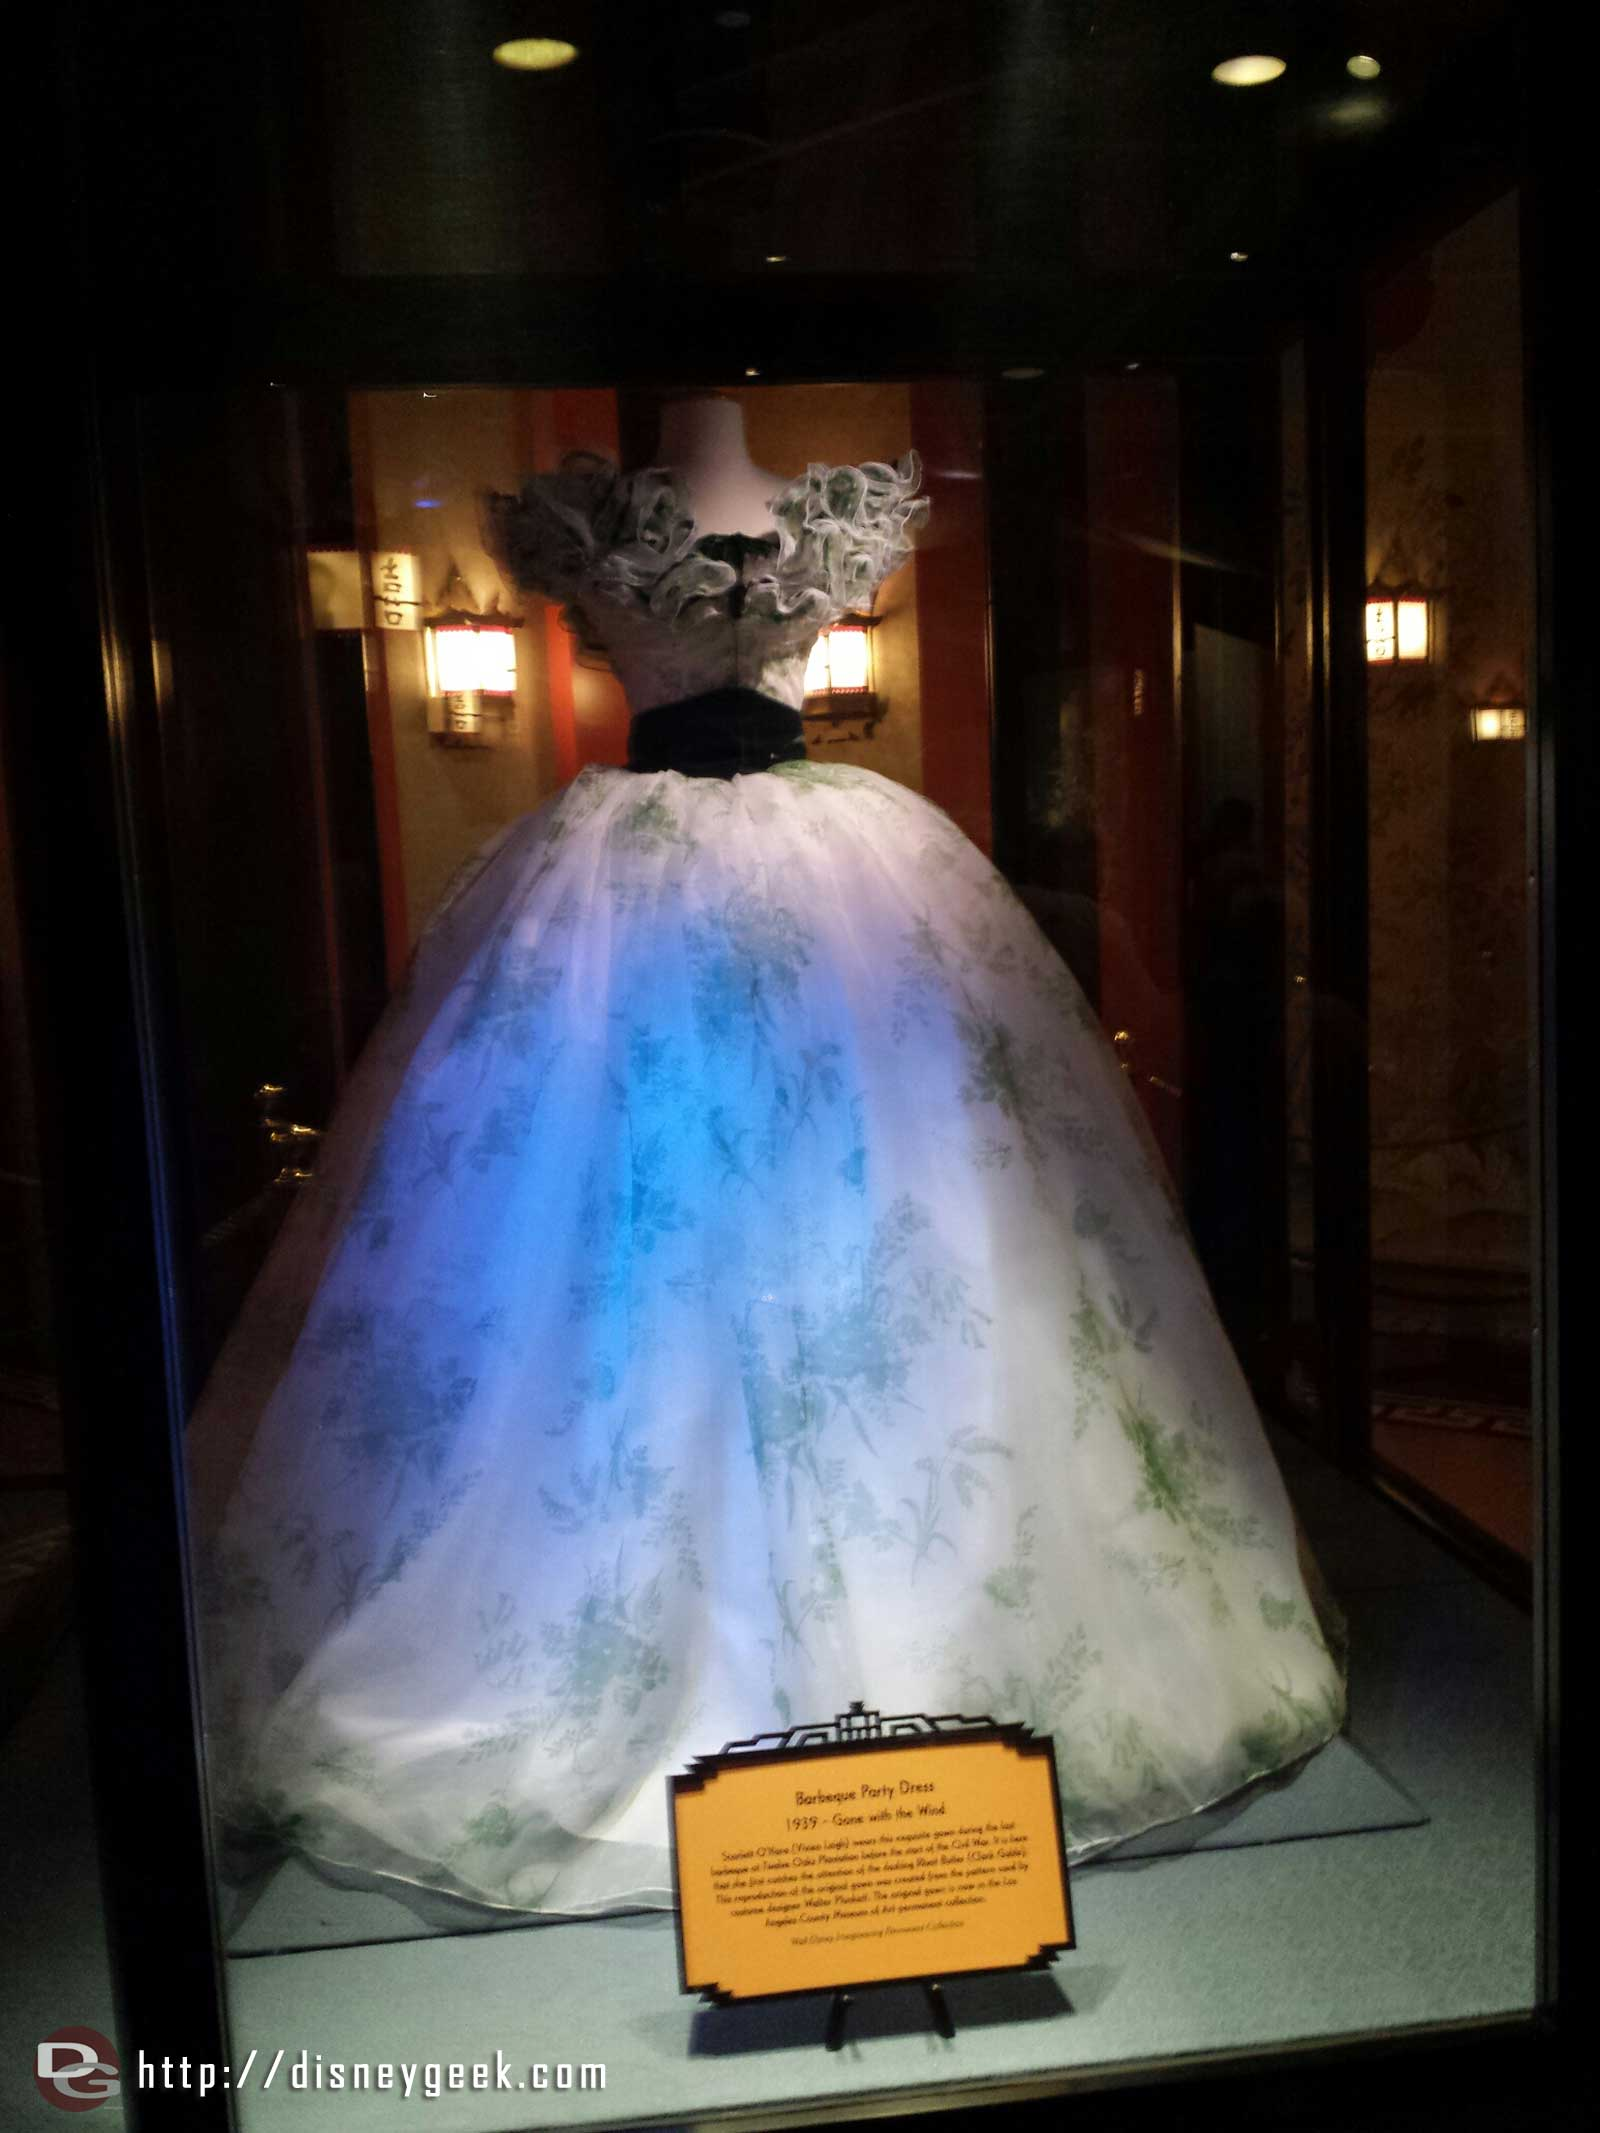 A dress from Gone with the Wind in the Great Movie Ride queue